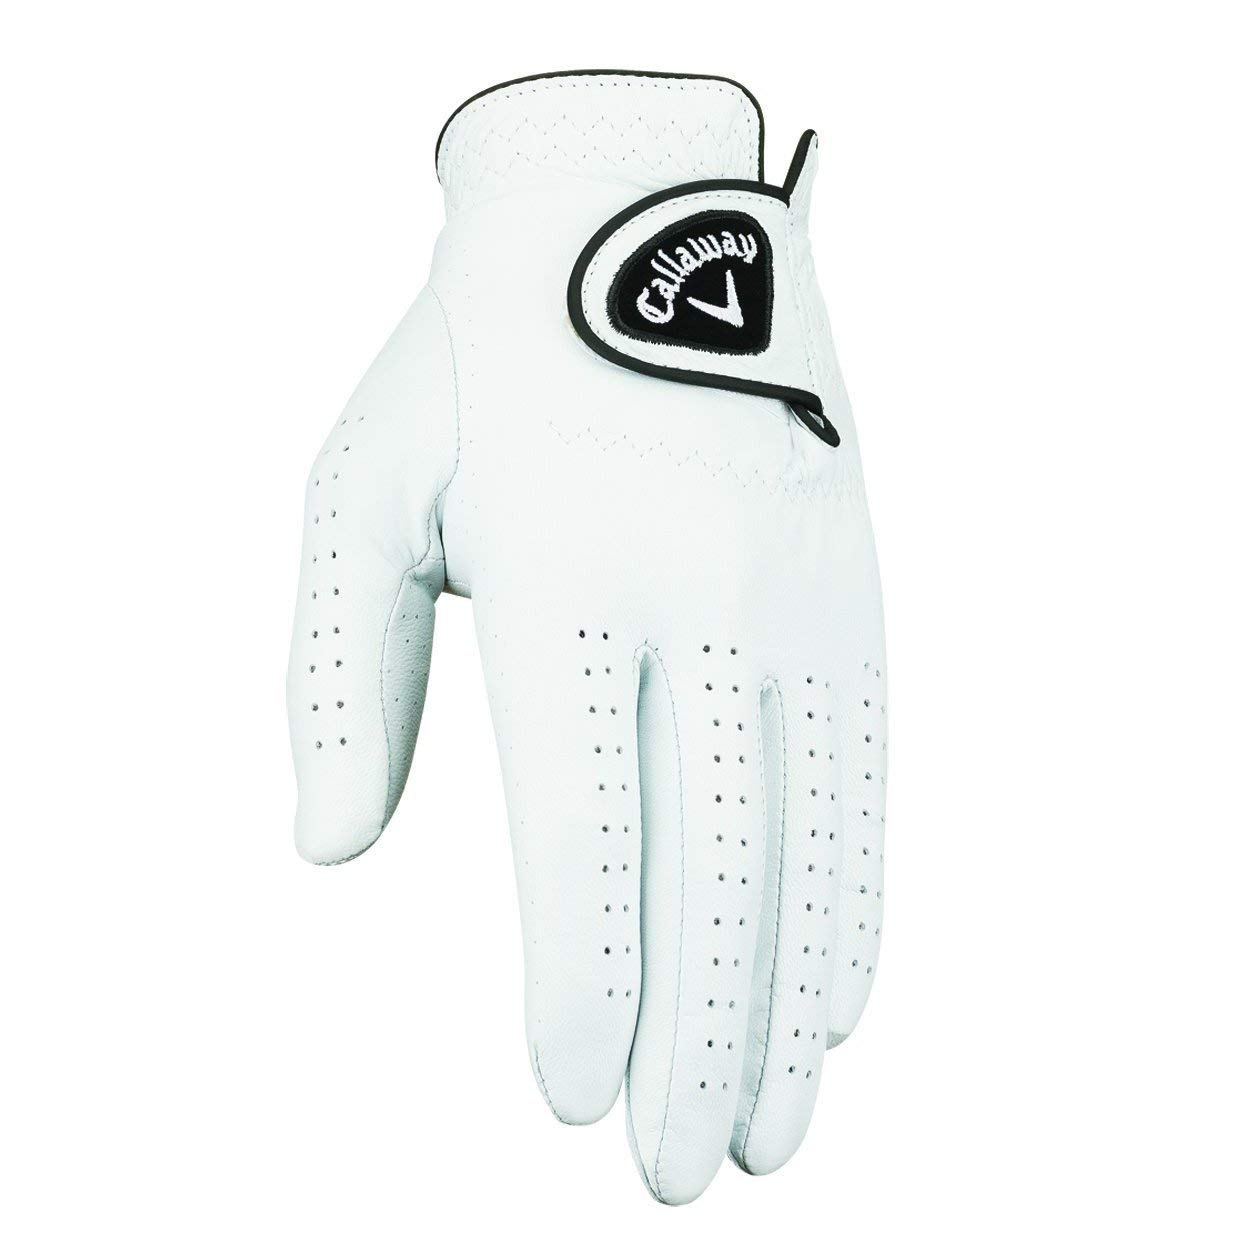 Callaway Men's Dawn Patrol Golf Glove (Women's Large 6 Pack-Master Carton, Worn on Right Hand)